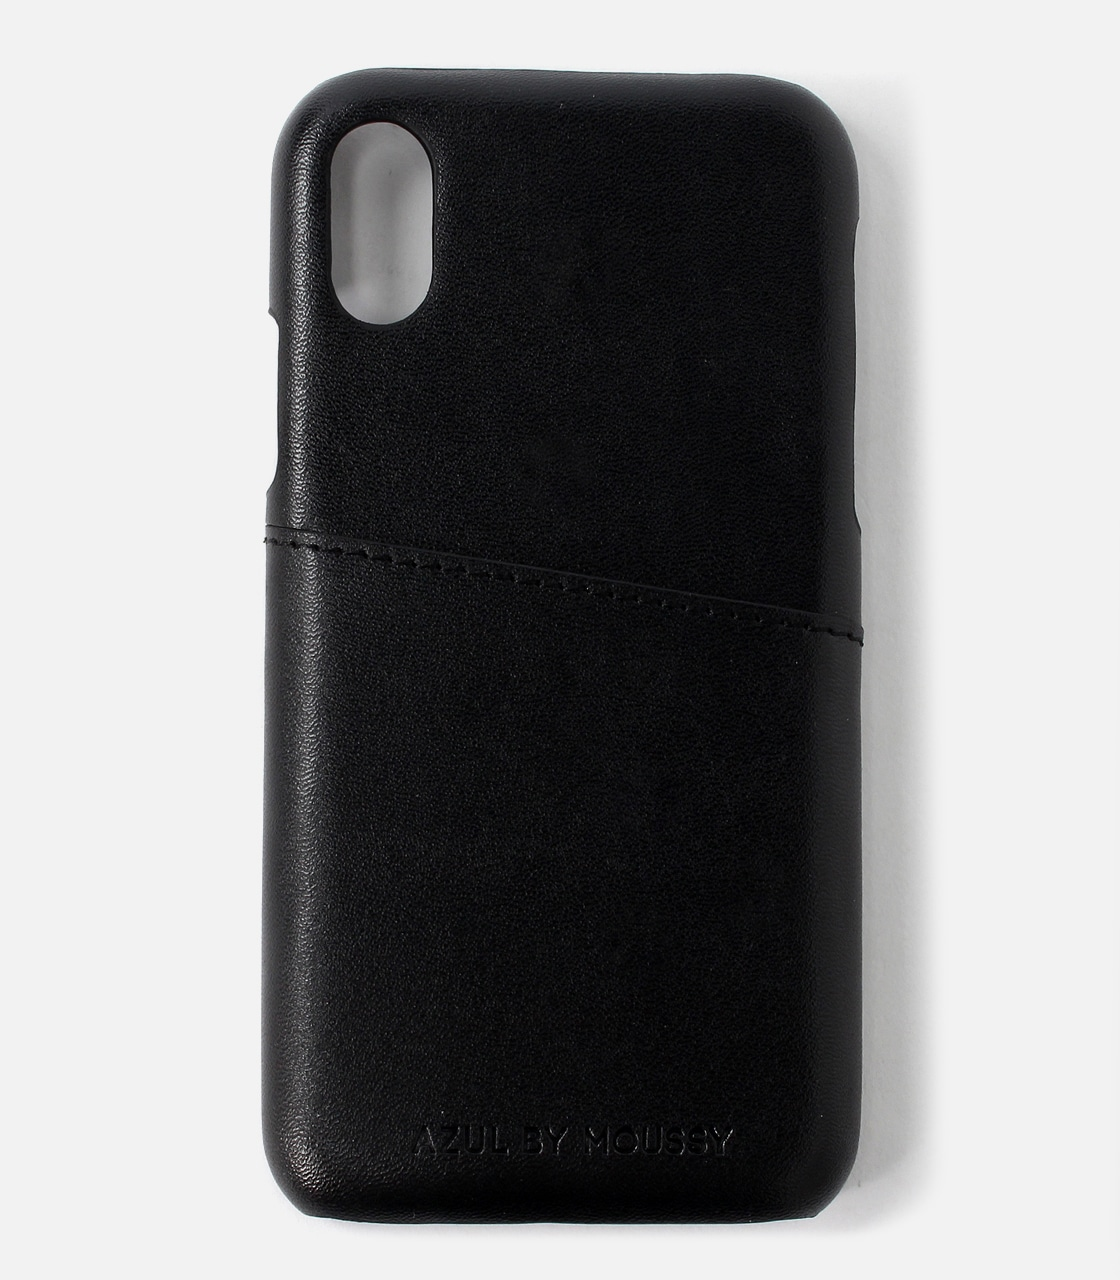 【AZUL BY MOUSSY】BLOCKING PHONE CASE 詳細画像 BLK 1